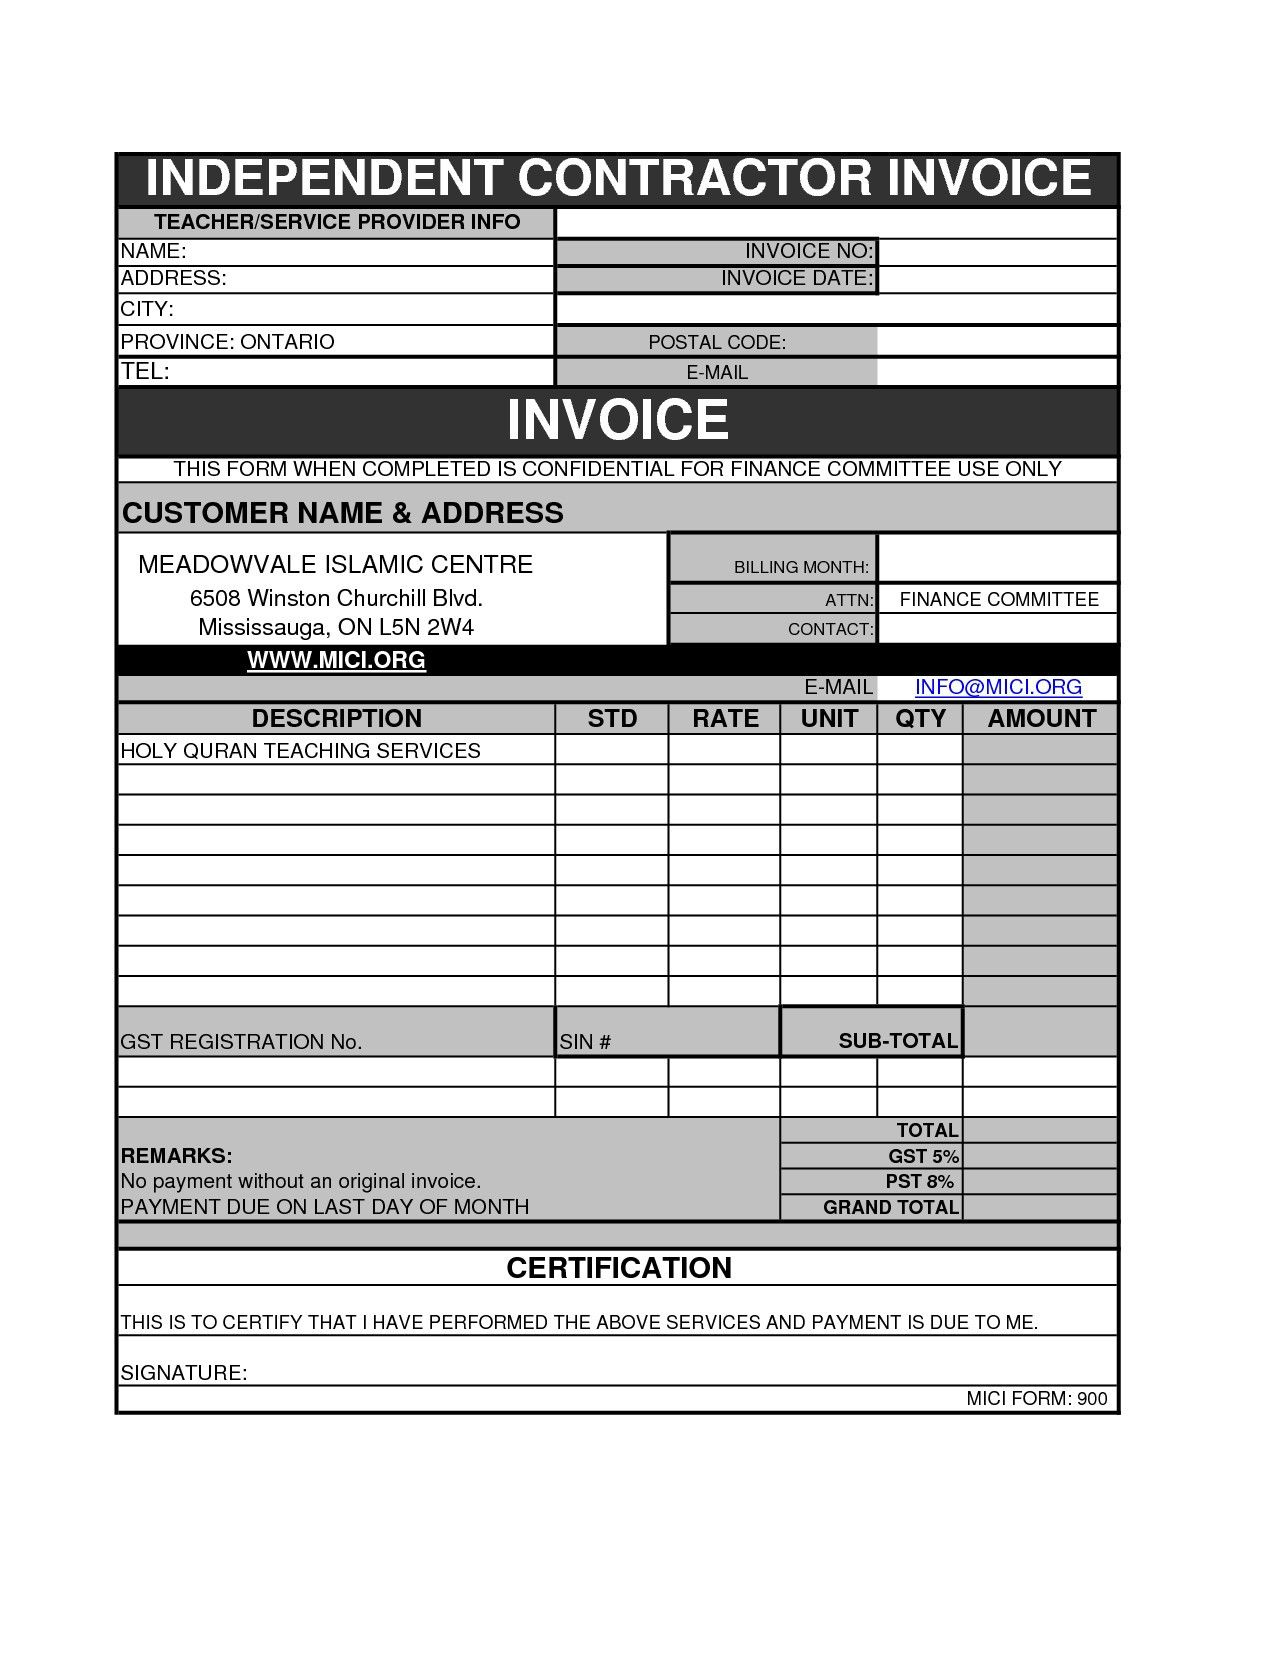 Independent Contractor Invoice Template Fresh Plumbing Invoice Awesome Consultant Billing Template with Od